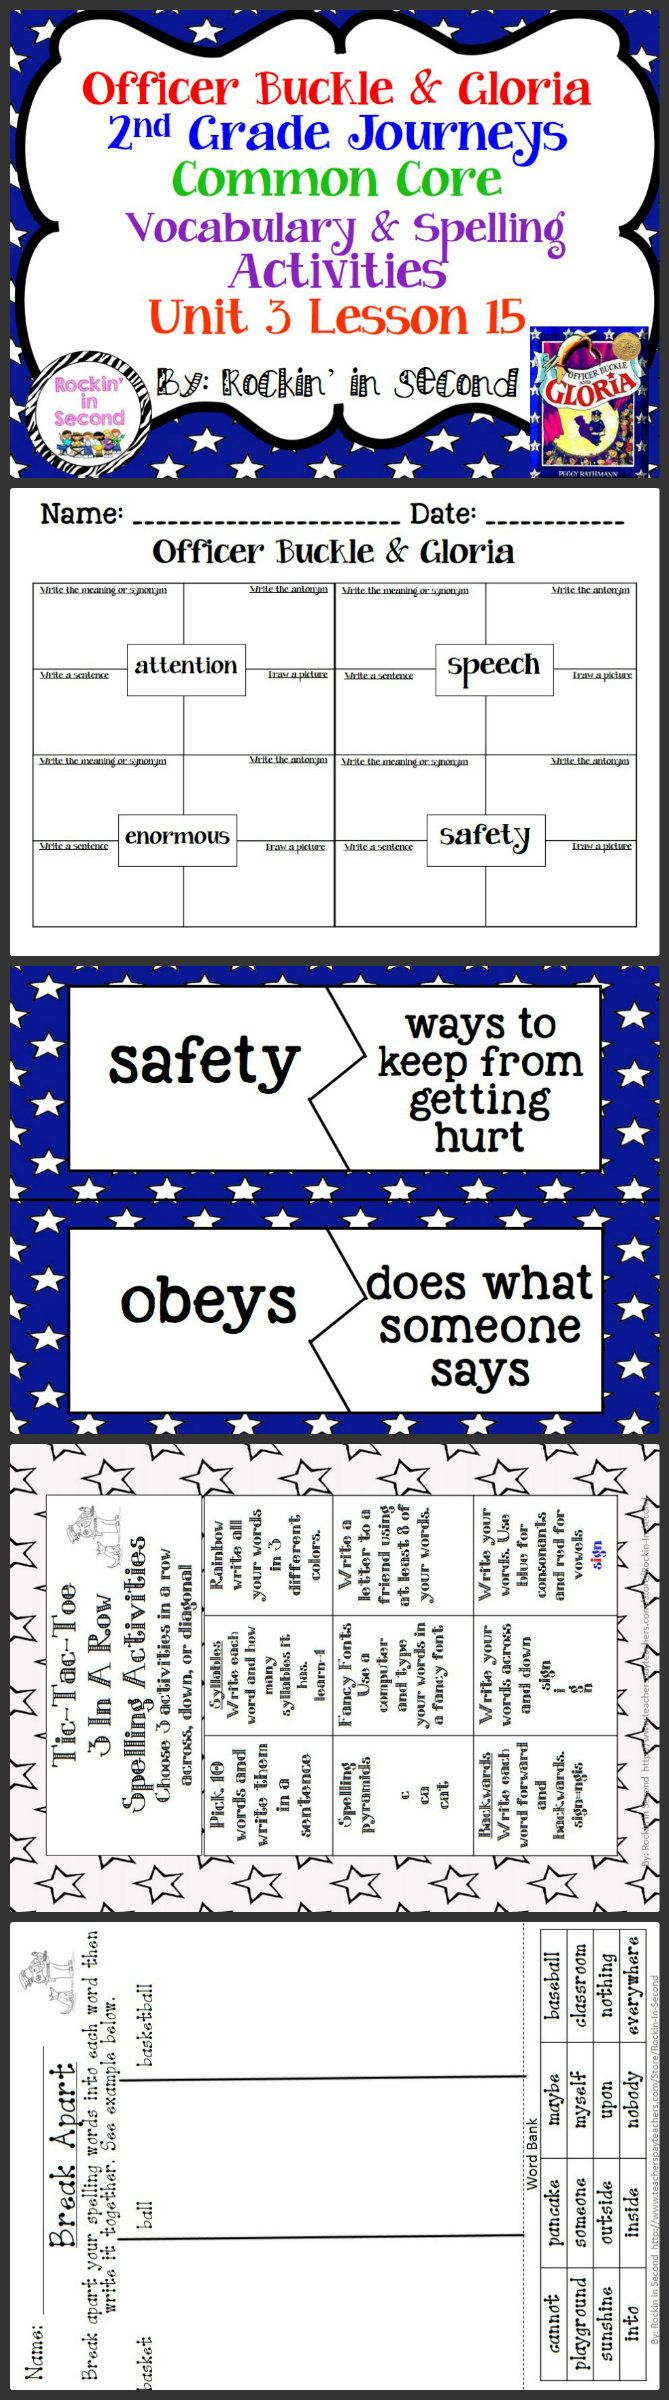 Worksheets Officer Buckle And Gloria Worksheets 19 best officer buckle and gloria images on pinterest journeys spelling vocab activities lesson 15